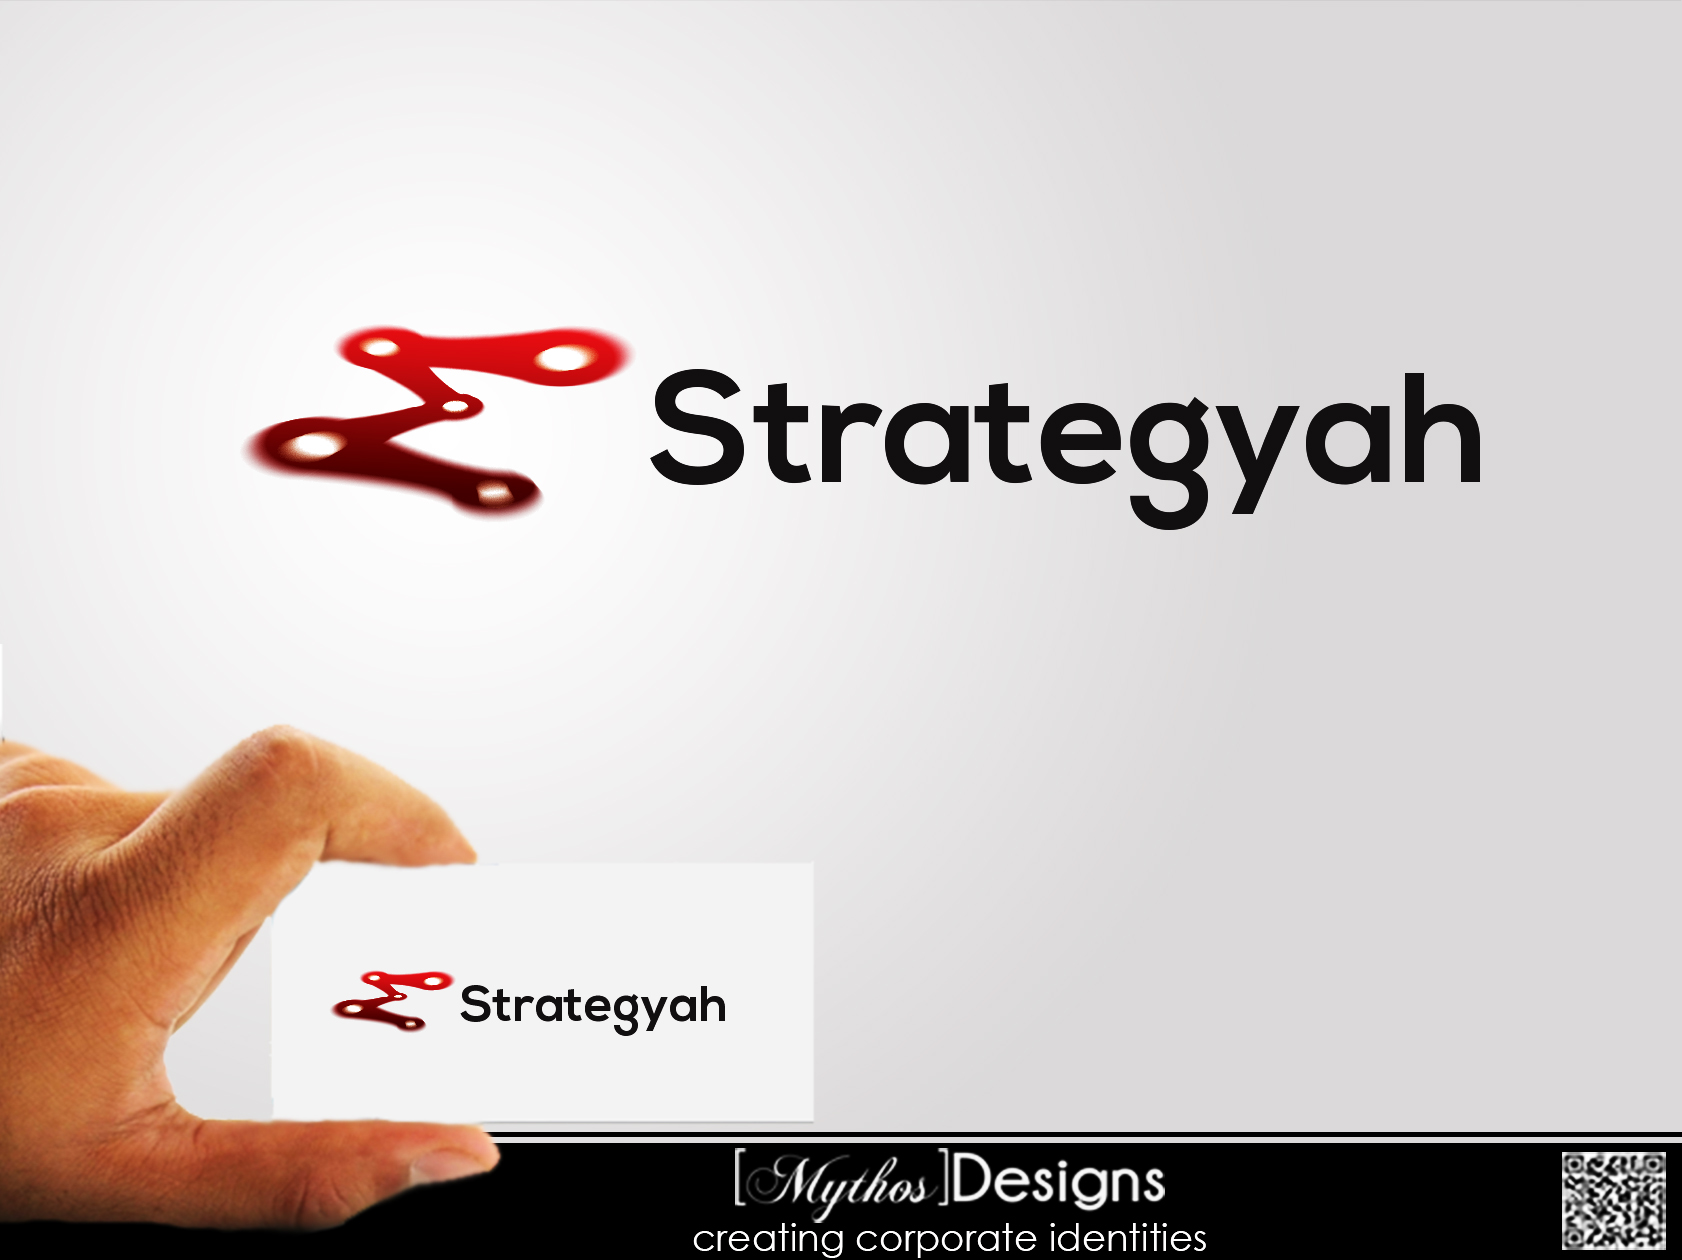 Logo Design by Mythos Designs - Entry No. 8 in the Logo Design Contest Creative Logo Design for Strategyah.